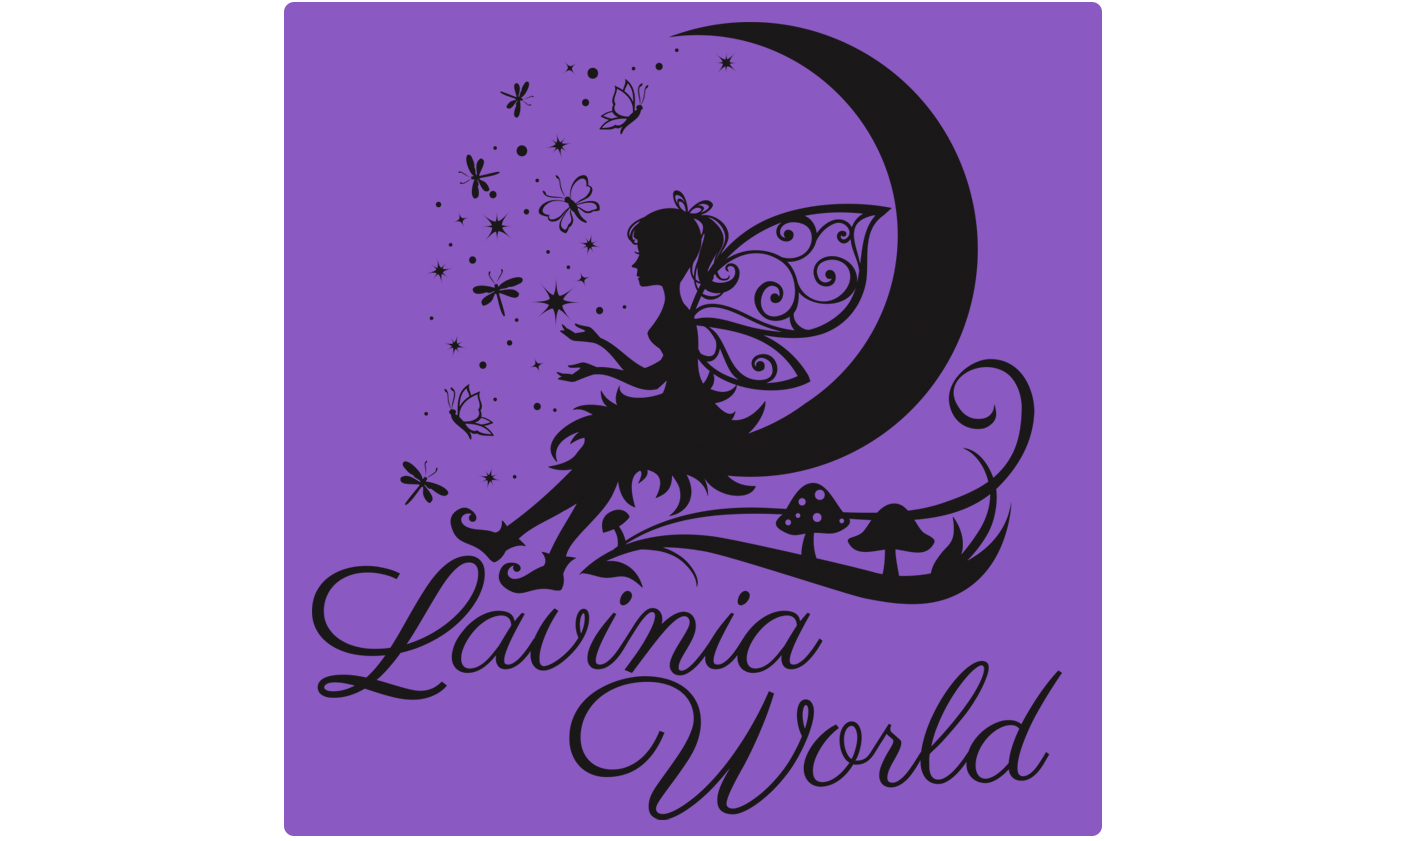 Lavinia World store